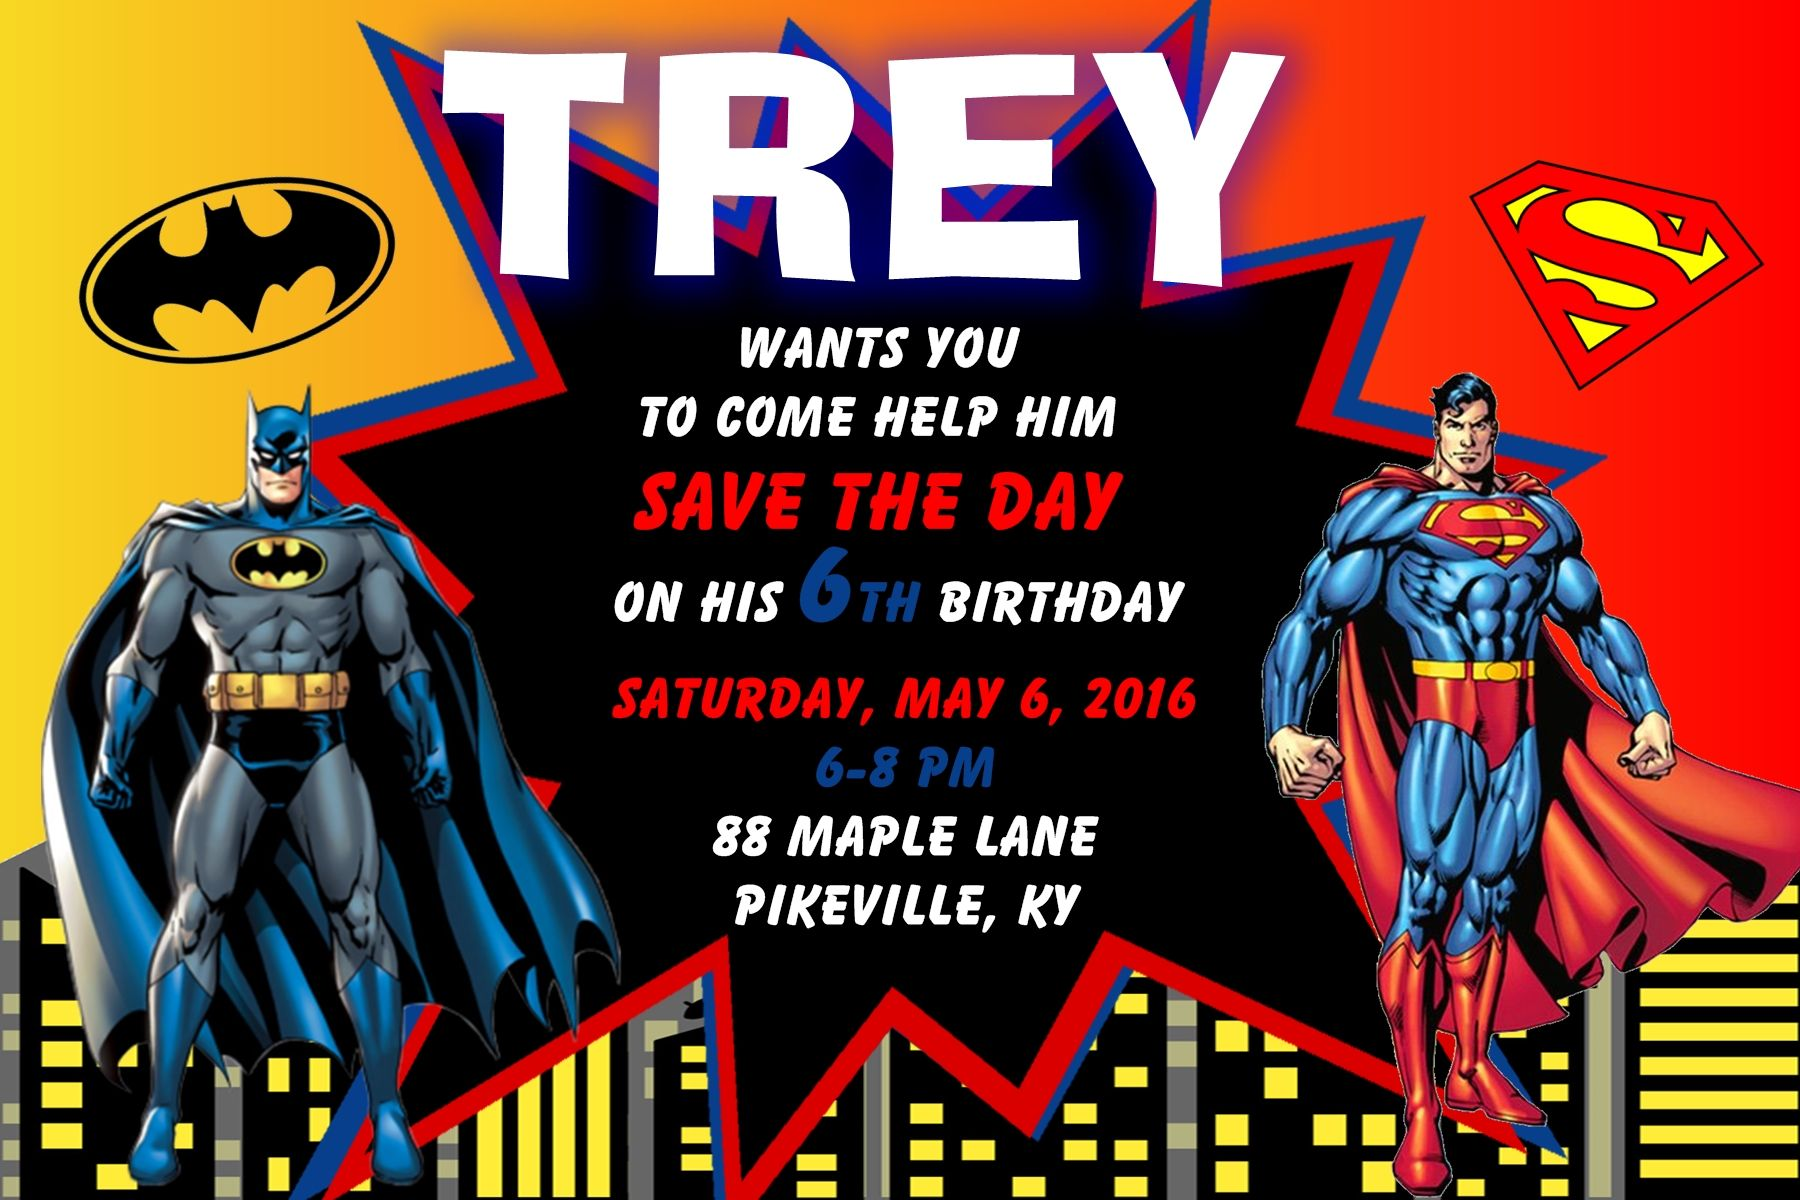 4x6 batman and superman birthday invitation contact me via email at 4x6 batman and superman birthday invitation contact me via email at aswiney01yahoo stopboris Gallery